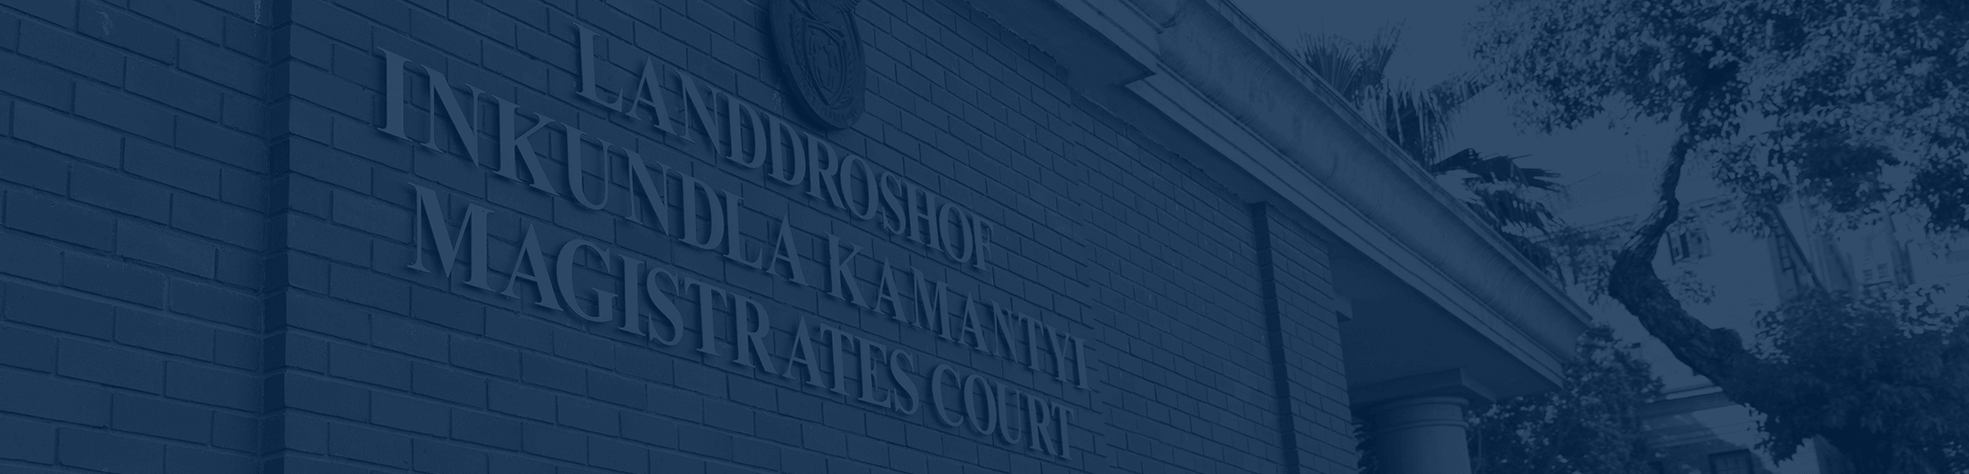 [MEDIA STATEMENT] Appointment of Magistrates